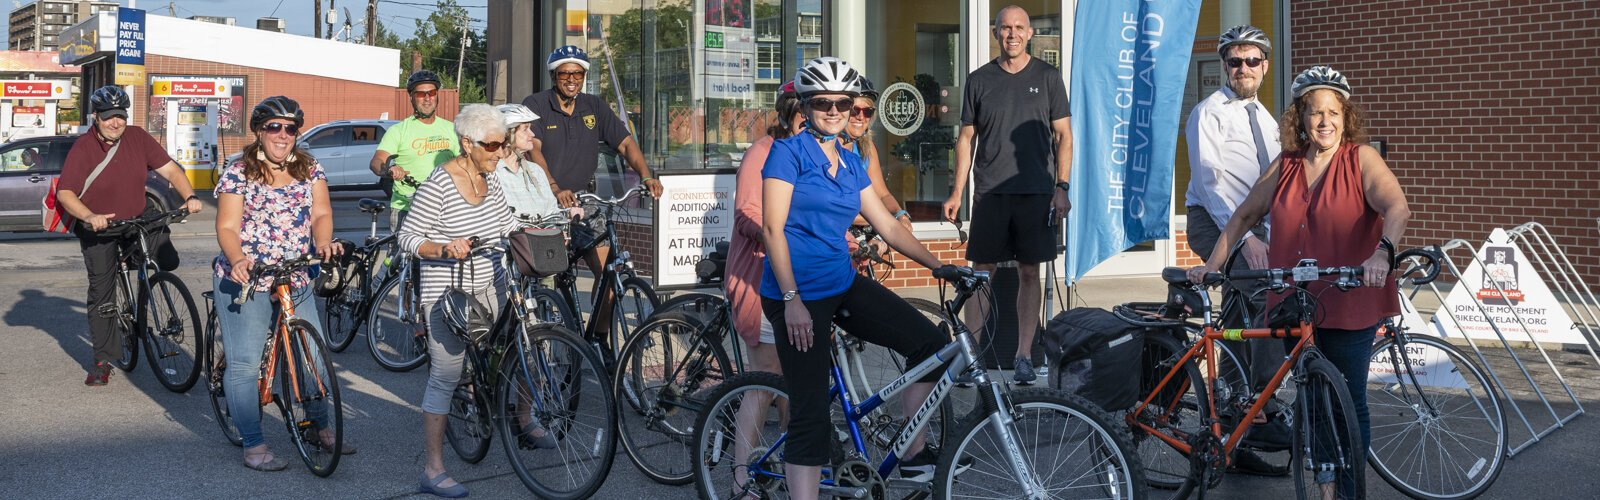 Ride + Learn: The Future of Fairfax bike tour